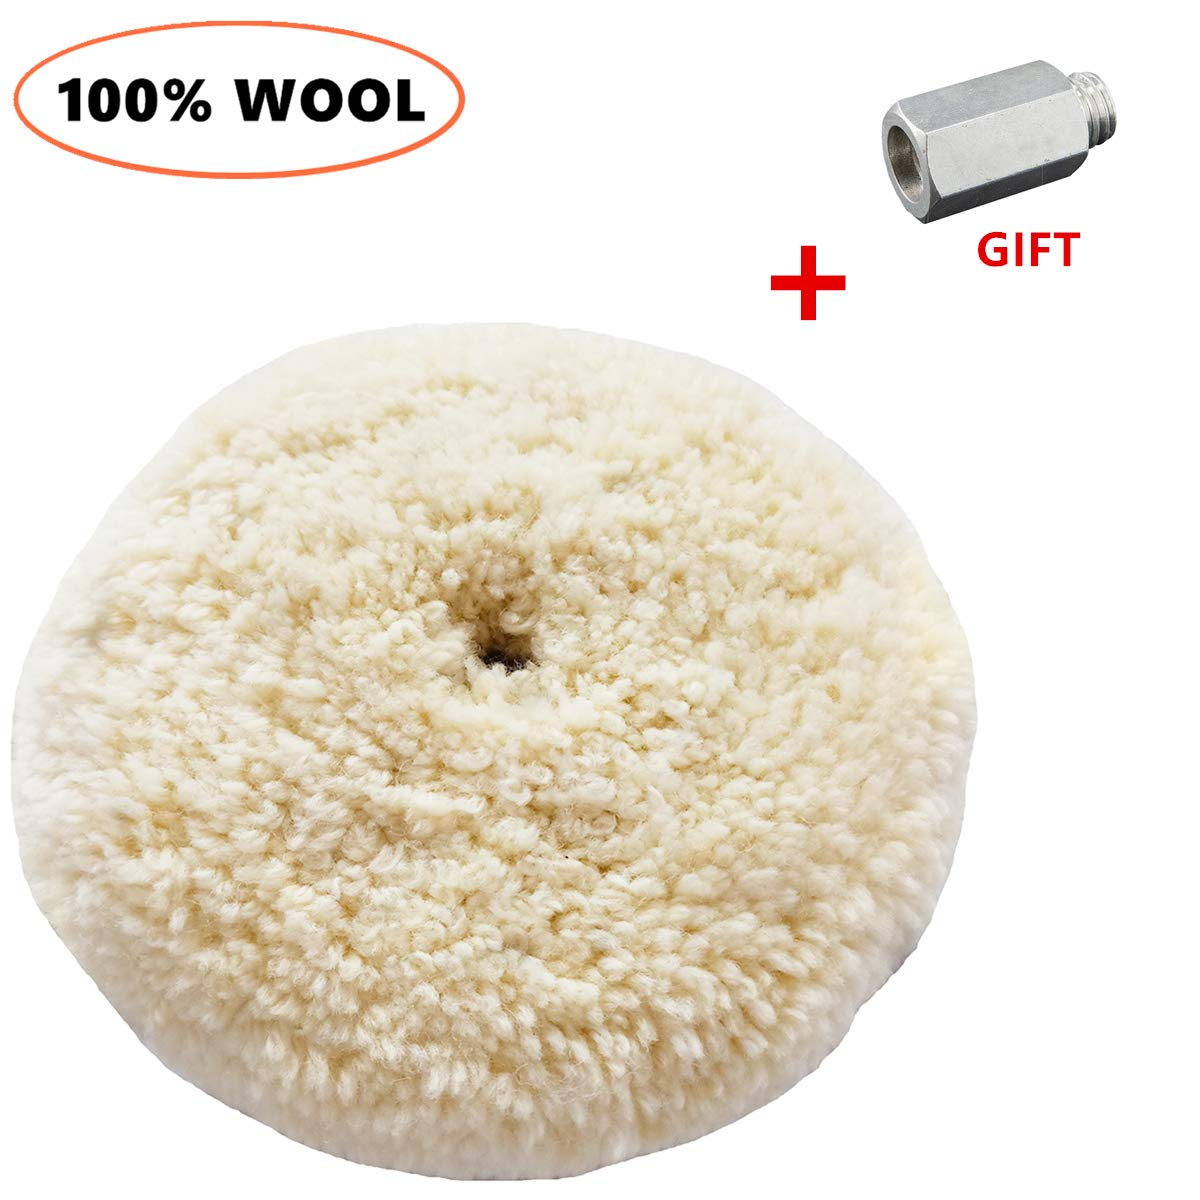 Sisha Double Sided Wool Buffing Pad with 5/8'' Extender Bolt Adapter, 7'' Polishing Pad for Compound, Cutting & Buffing, 100% Natural Wool, Thick and Aggressive